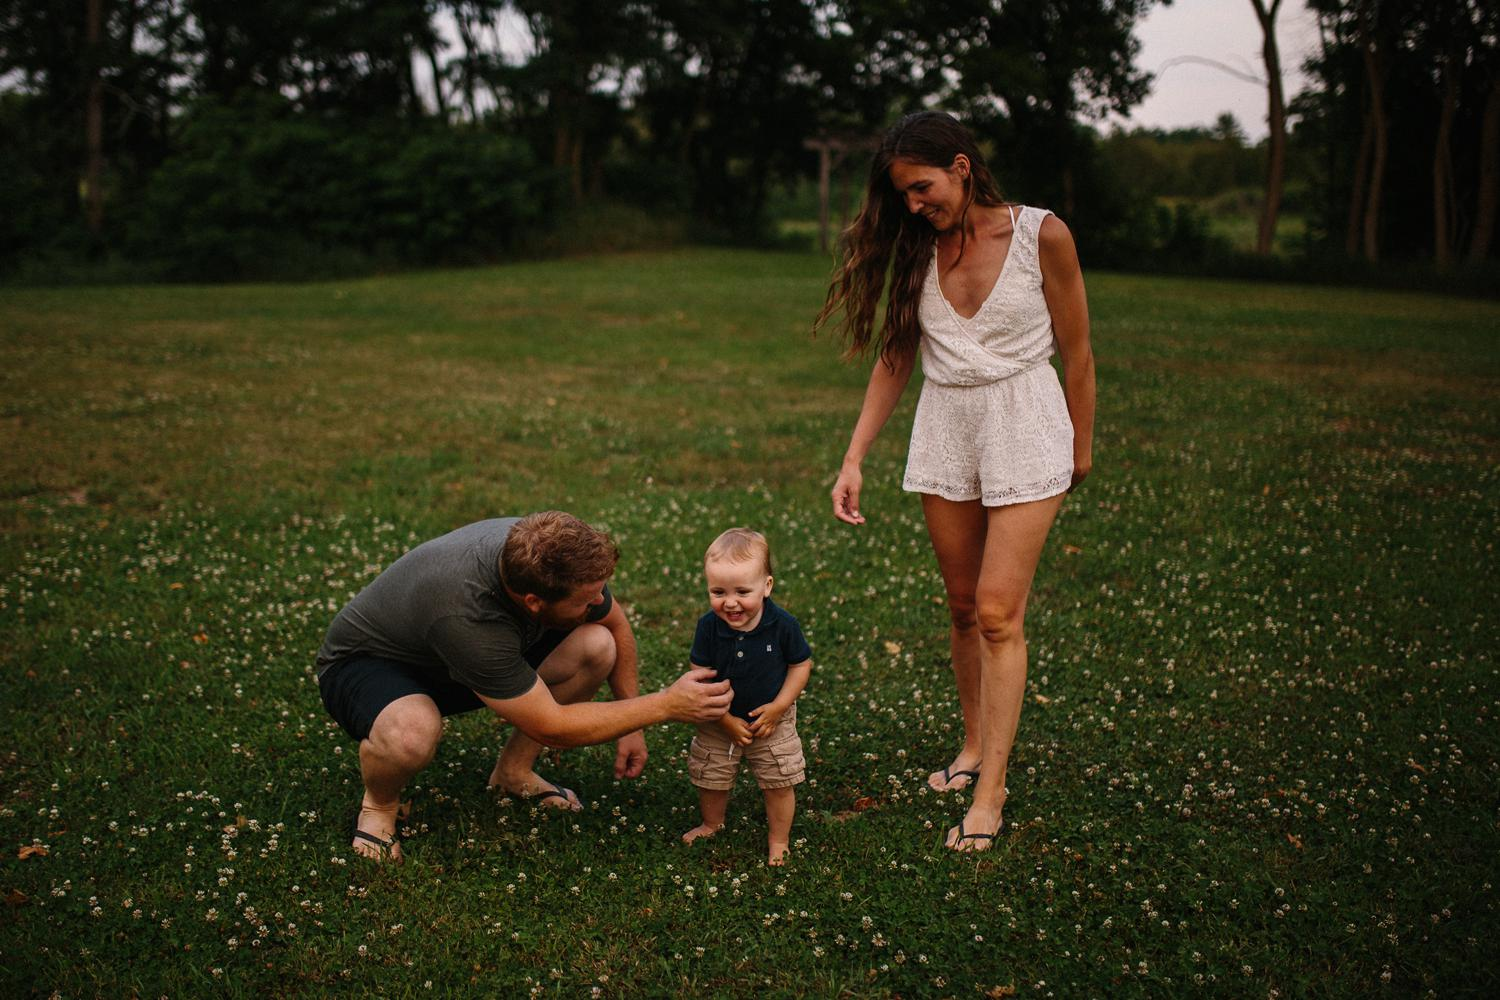 lanark highlands farm family photo session - kerry ford photography-069.jpg